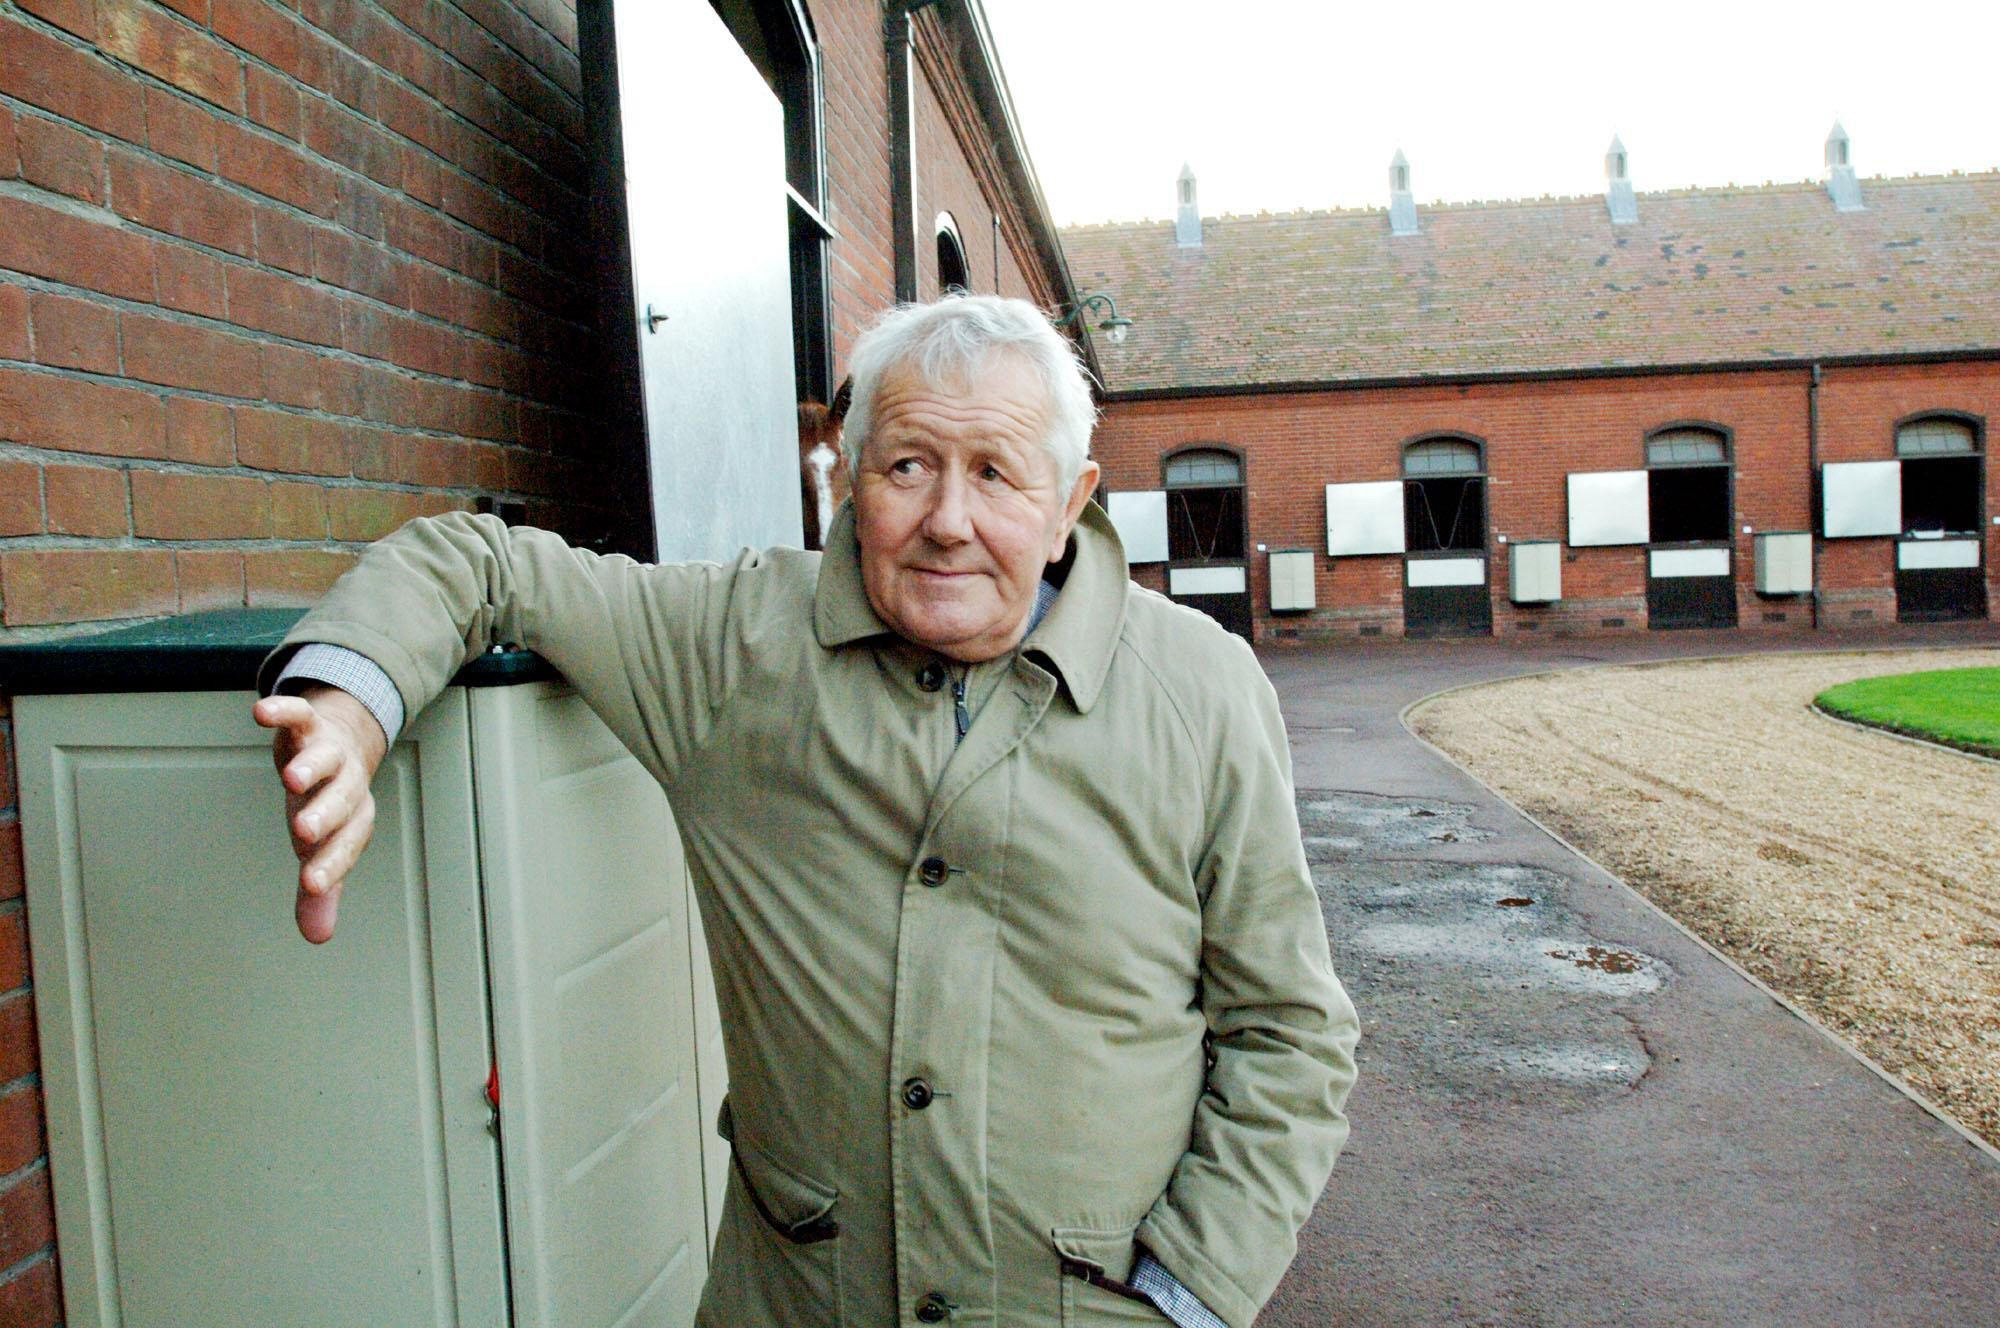 David Elsworth at his Egerton House Stables in Newmarket